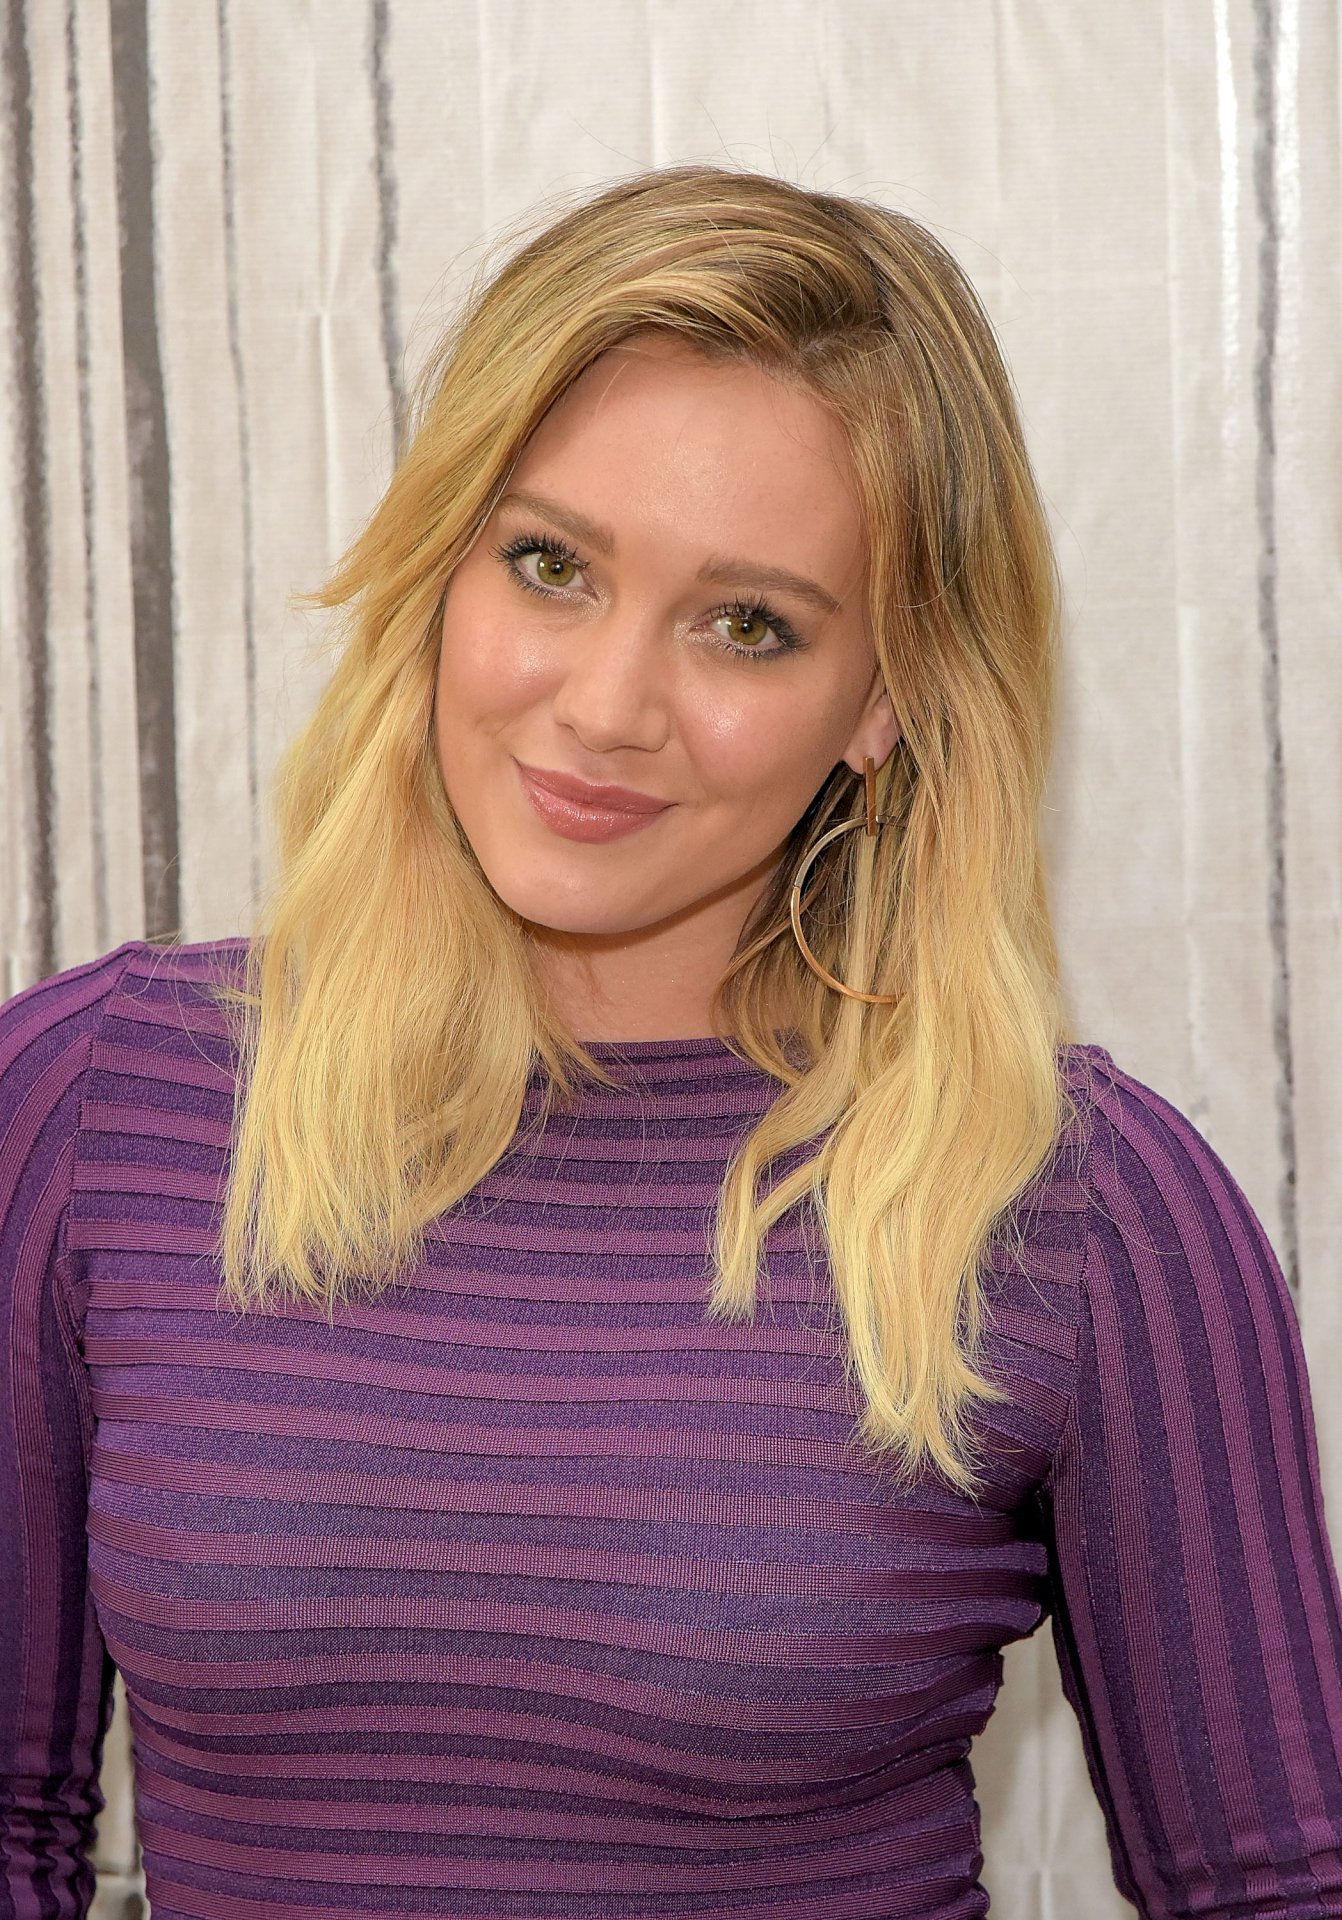 hilary-duff-35 | Hot Celebs Home Hilary Duff